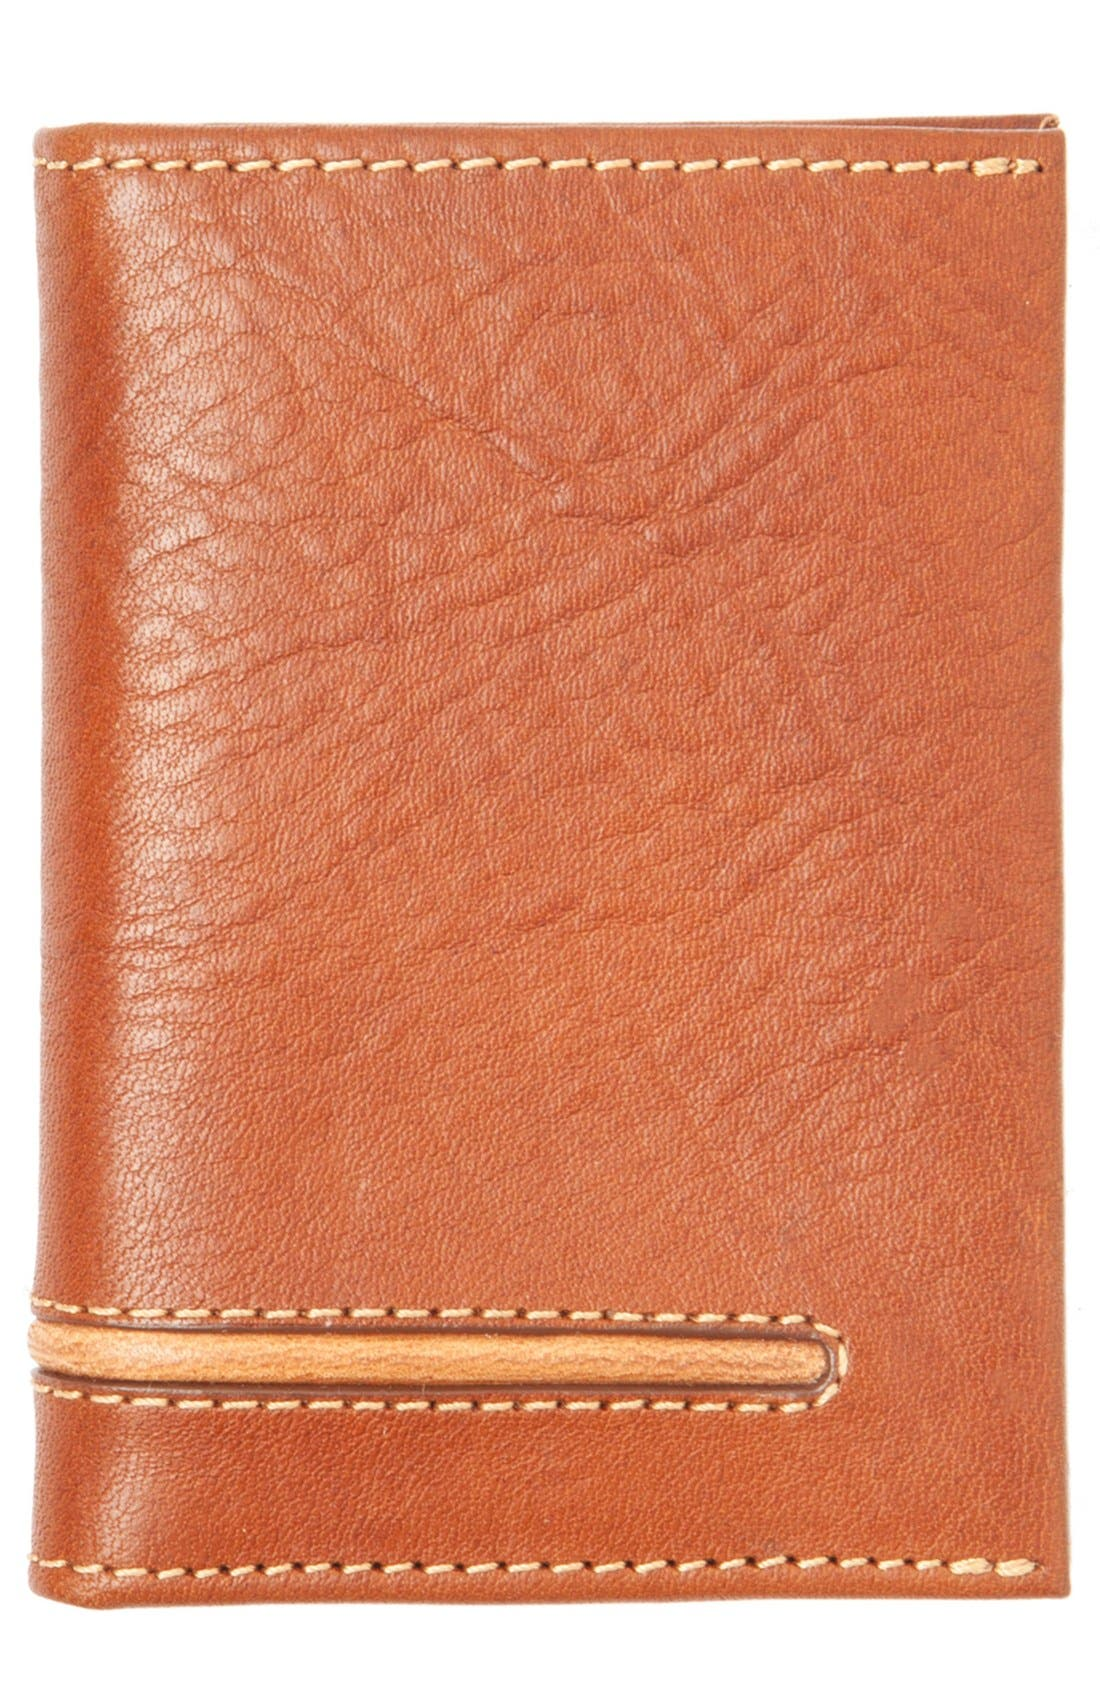 Main Image - Tommy Bahama Leather Money Clip Card Case